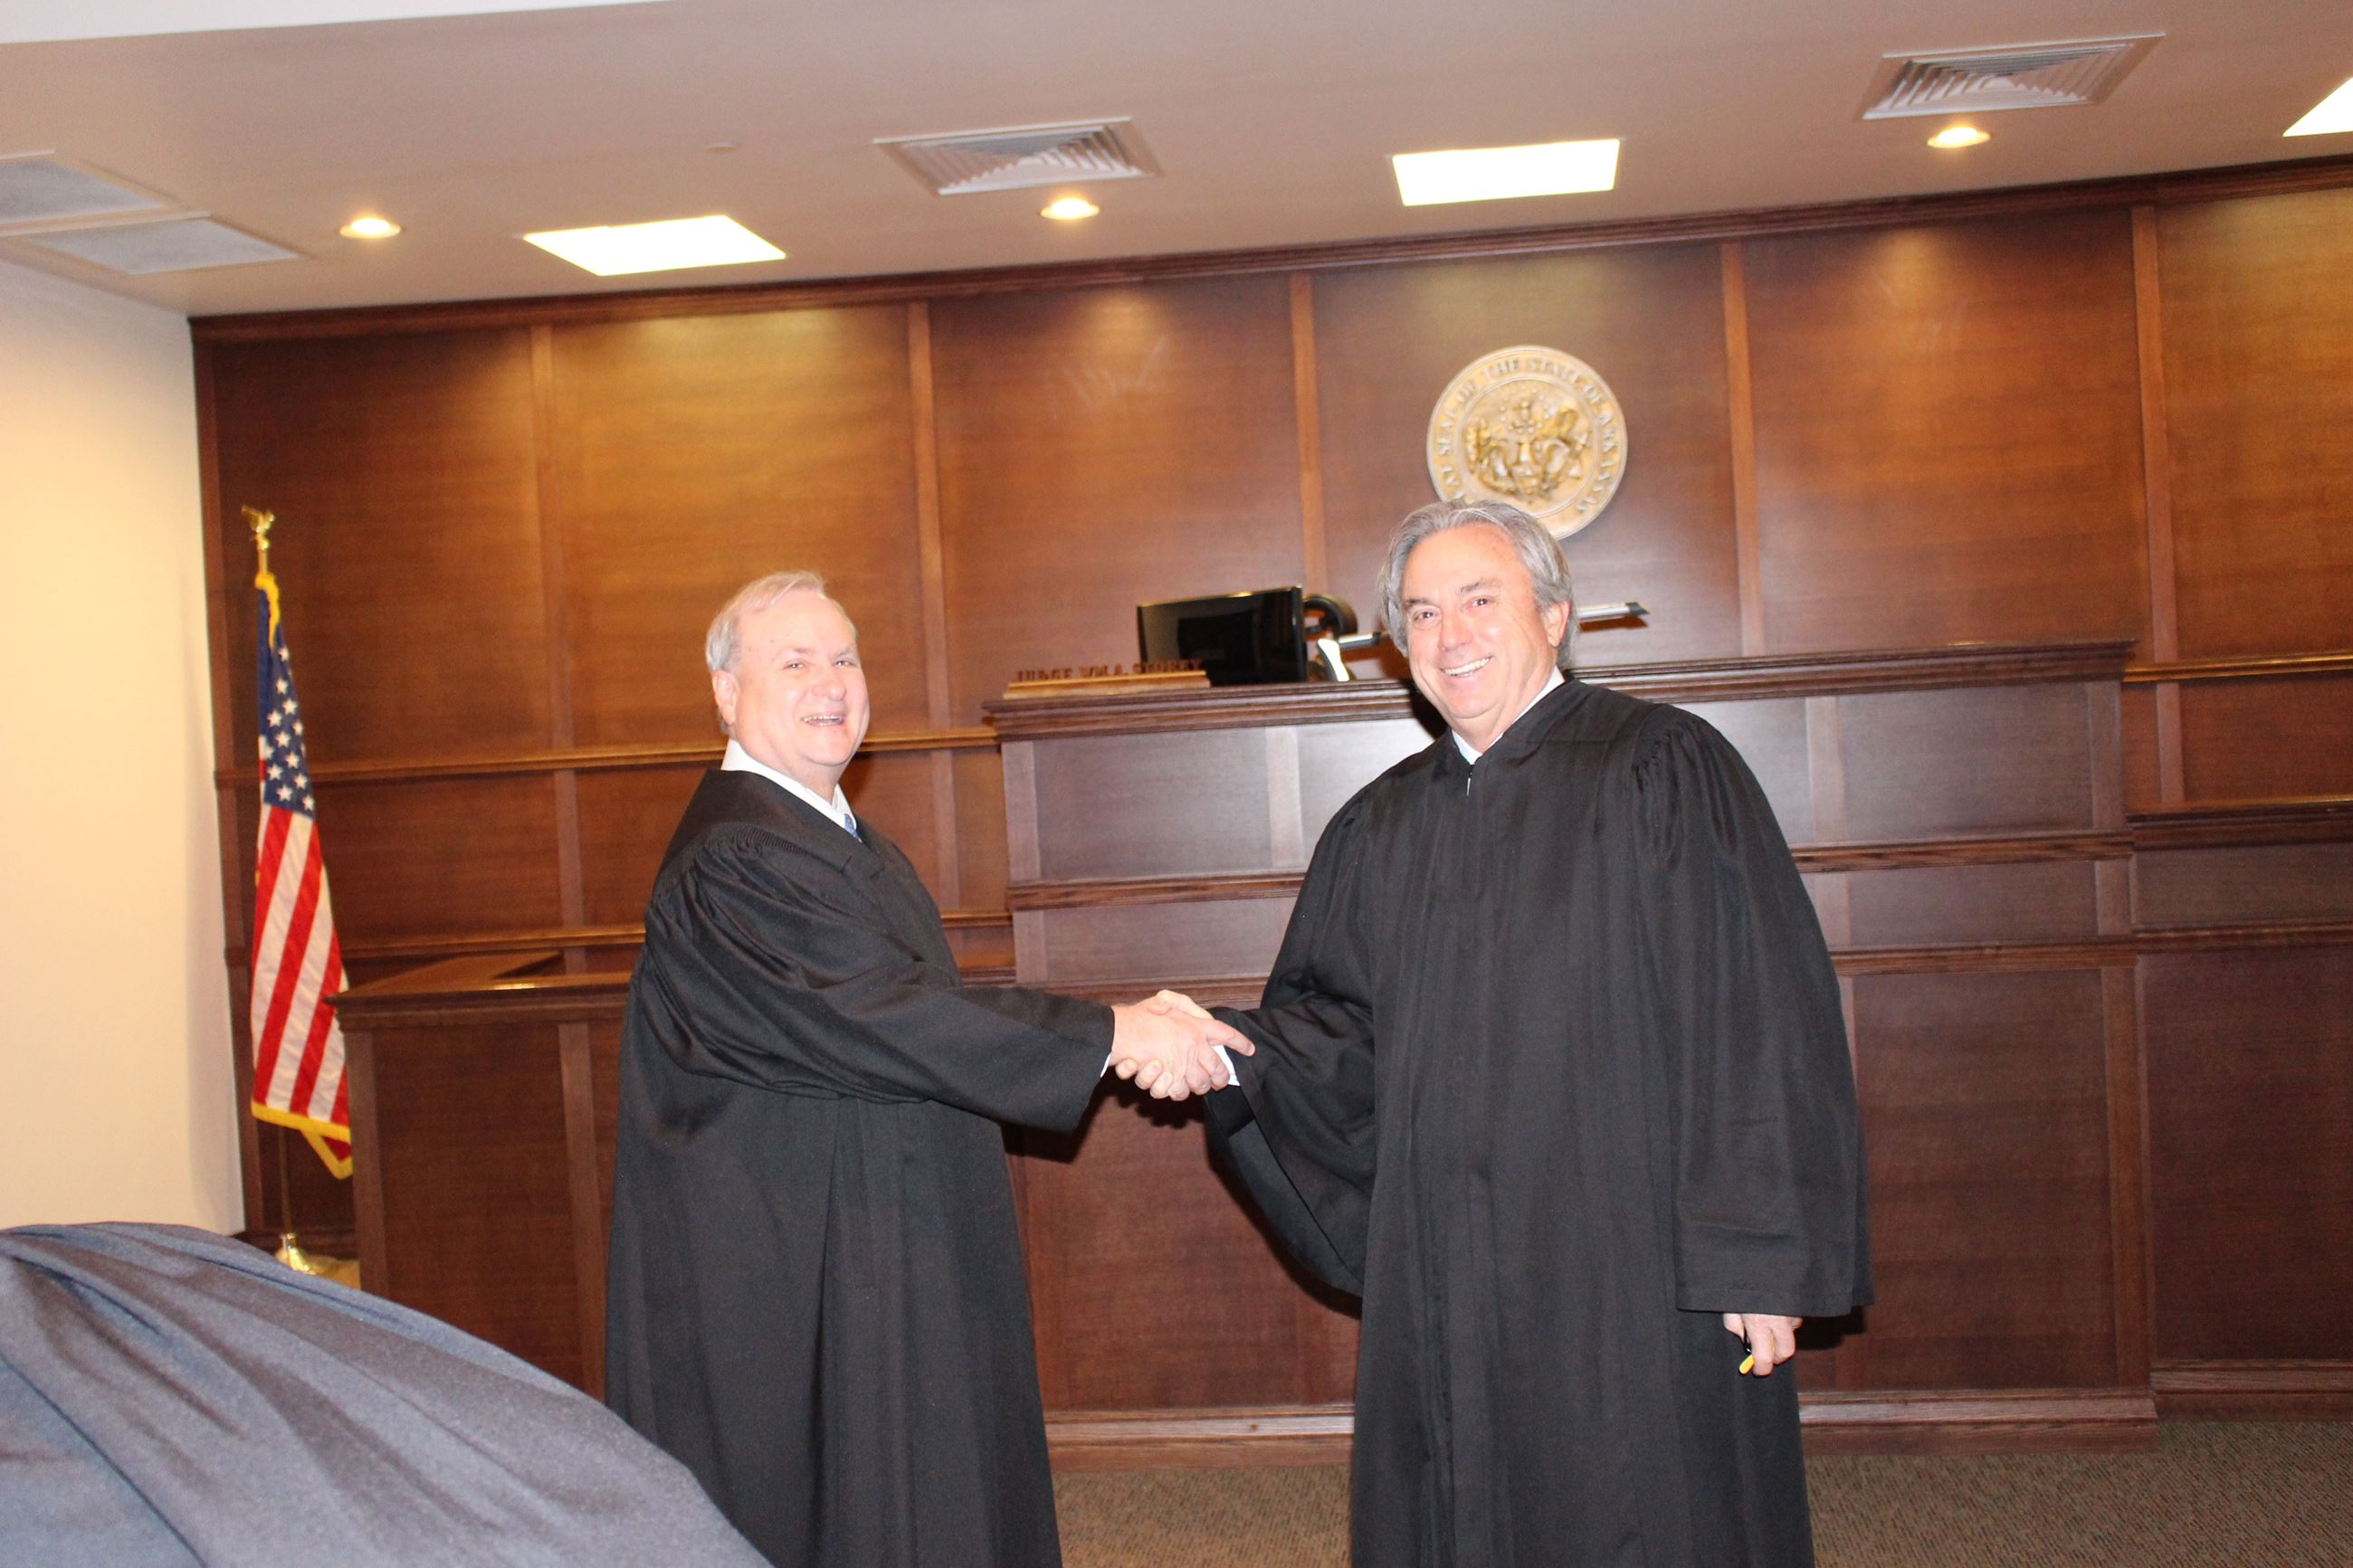 Judge Jeff Harper was sworn in as Springdale's first full time District Court Judge by Hon. Robert Gladwin, Chief Judge at Ark Court of Appeals. 1-2-2017